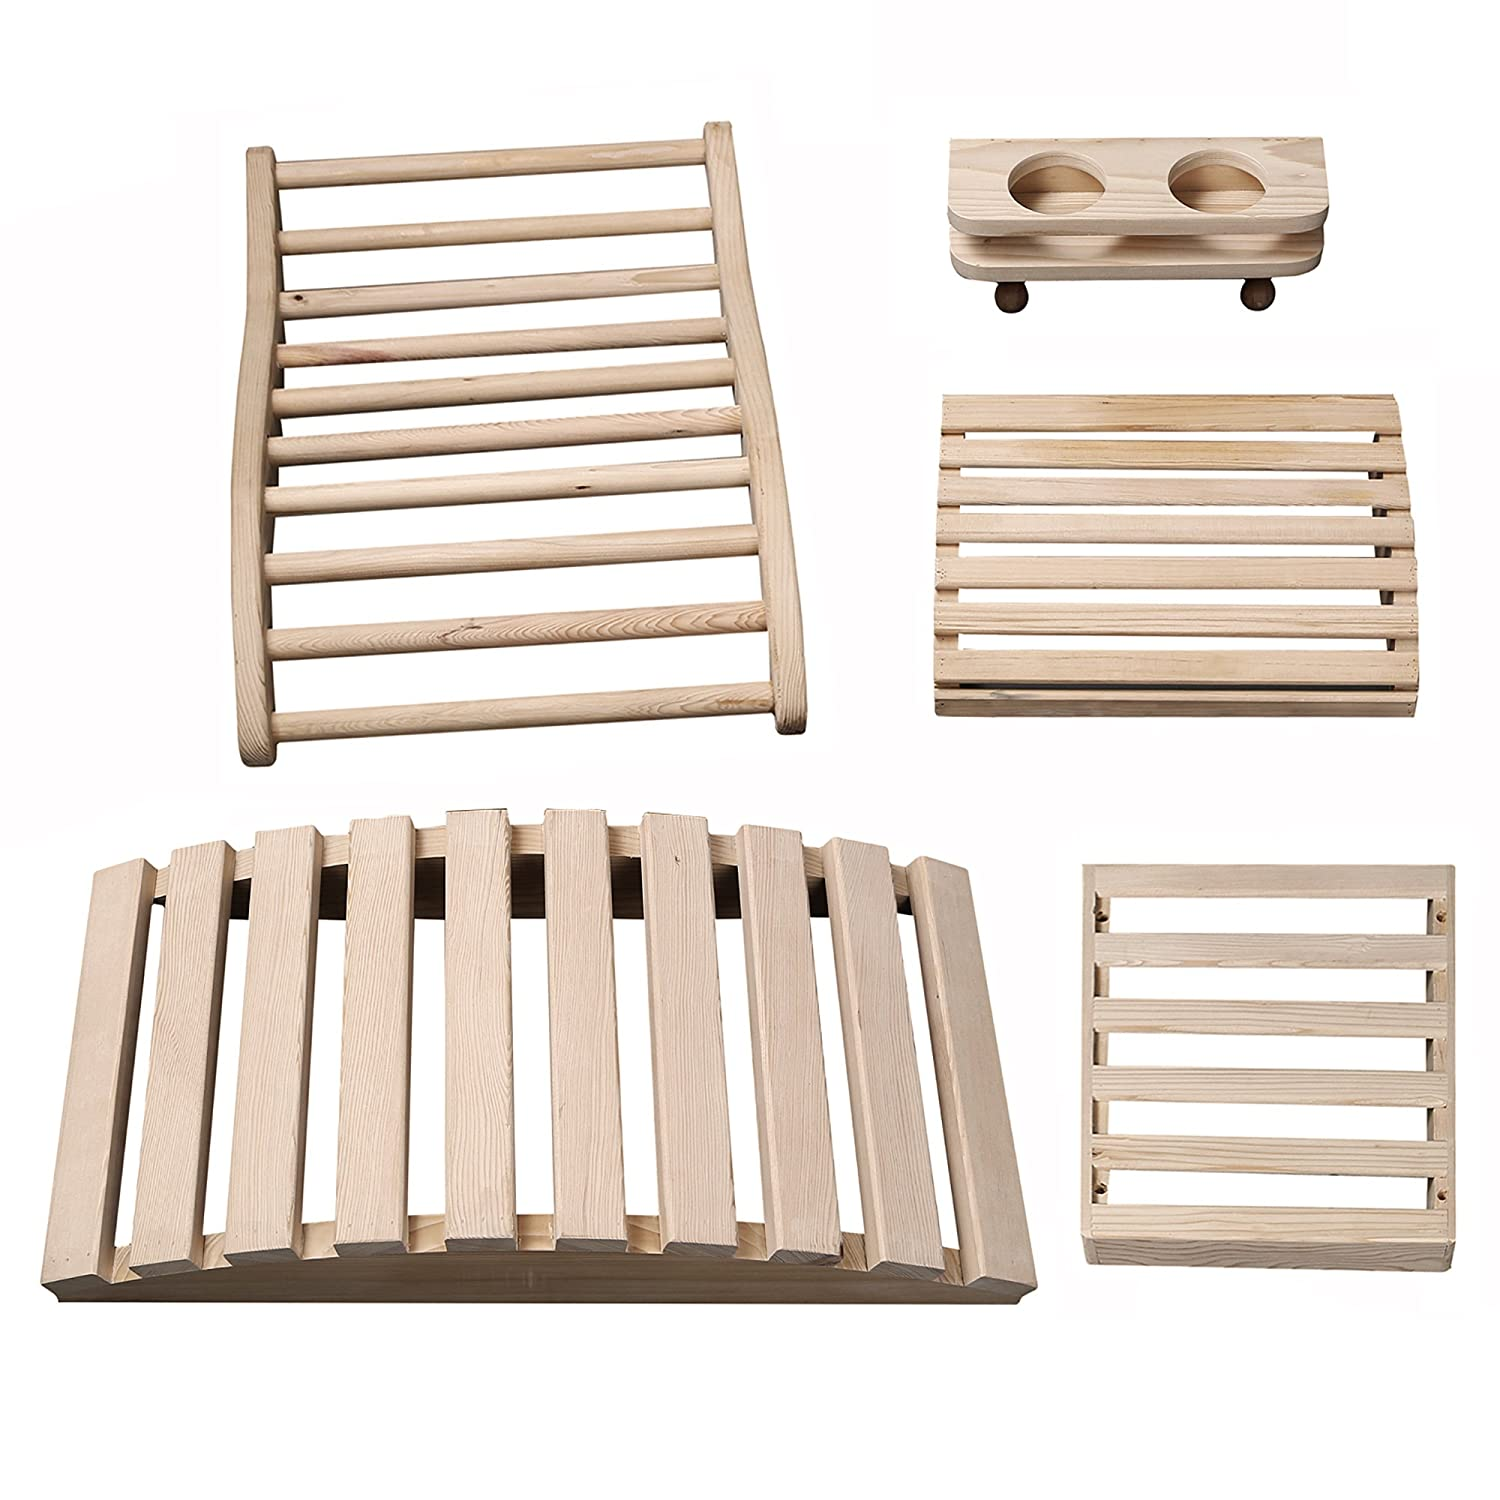 Radiant Saunas SA5024 Deluxe Accessory Kit, 23.625